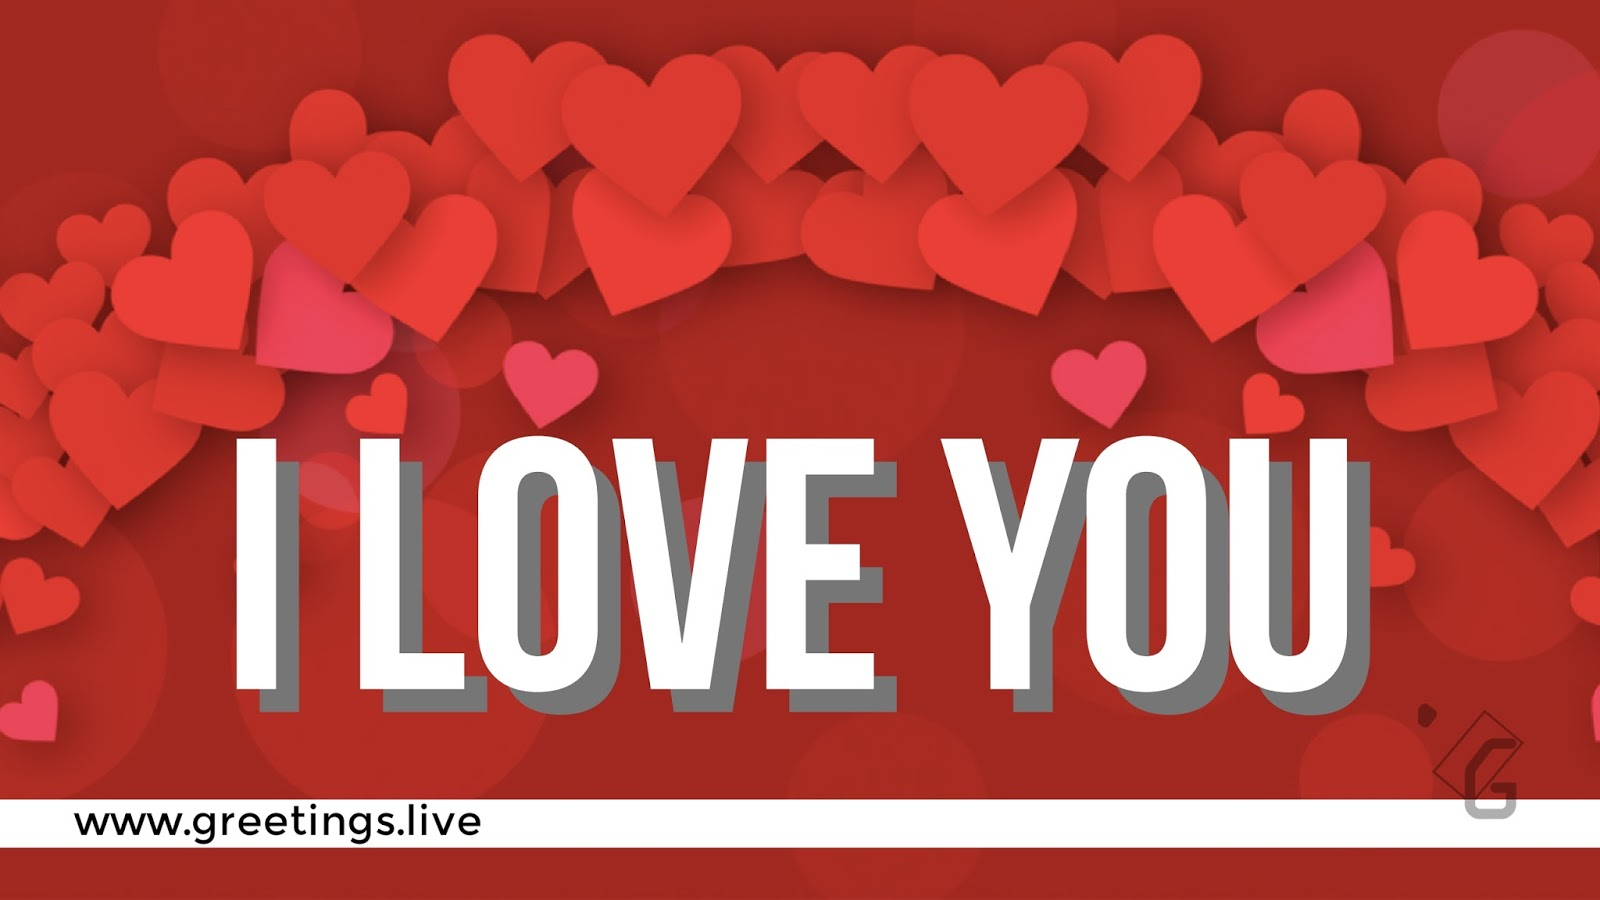 Love greetings images gallery greeting card examples greetingsve hd images love smile birthday wishes free download i love you greeting live love proposal kristyandbryce Choice Image